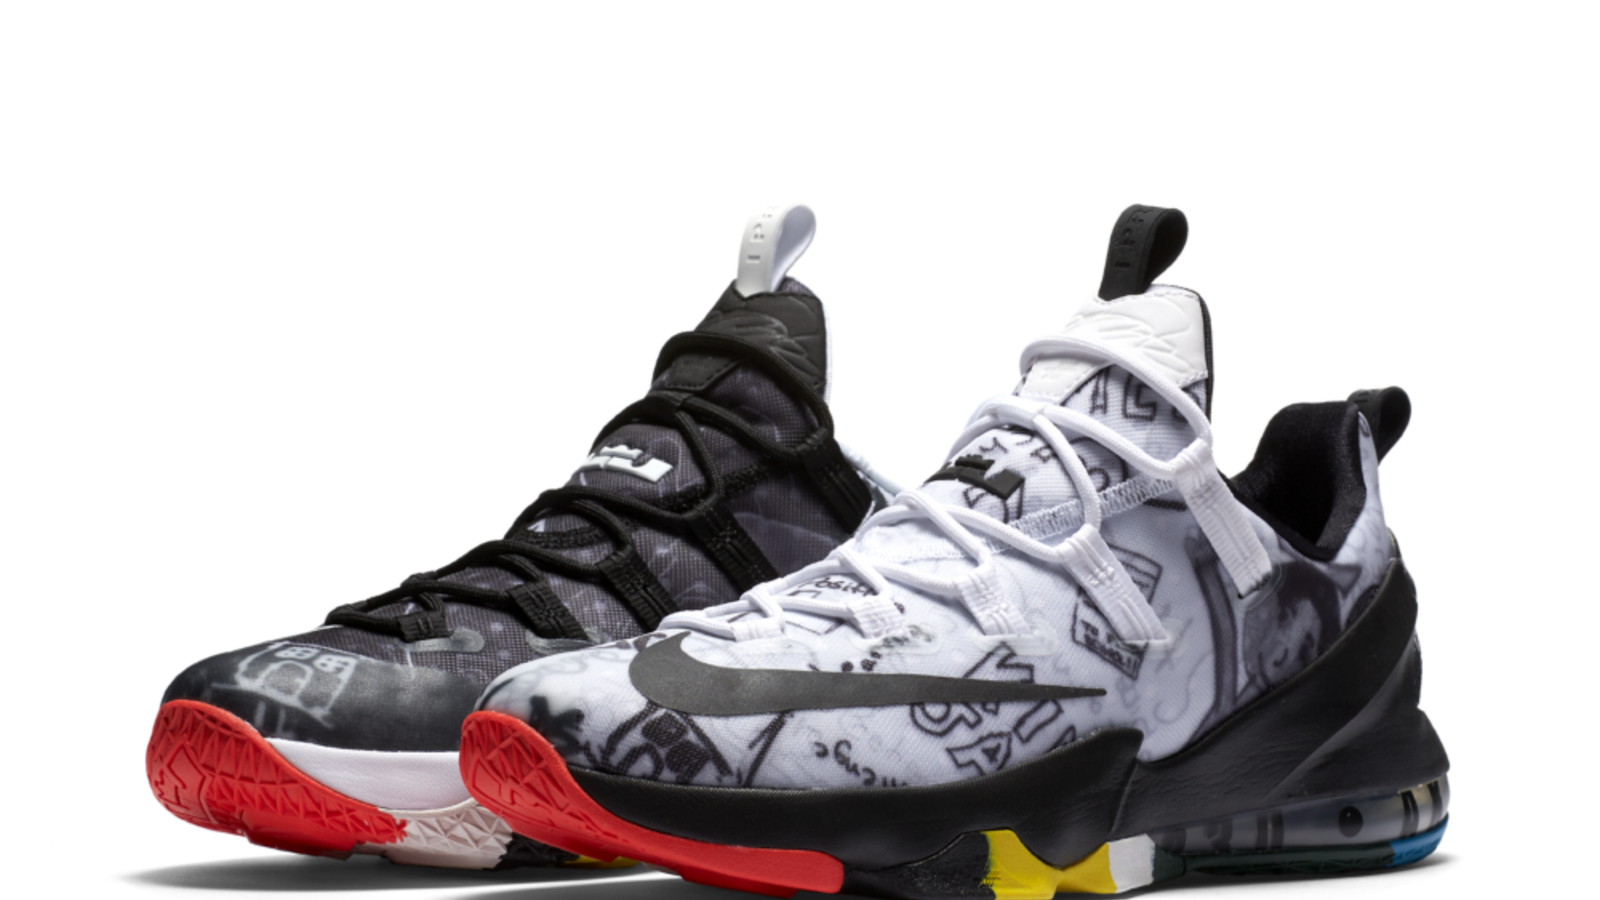 93e1566b98c9 Hometown Pride  LEBRON 13 Low